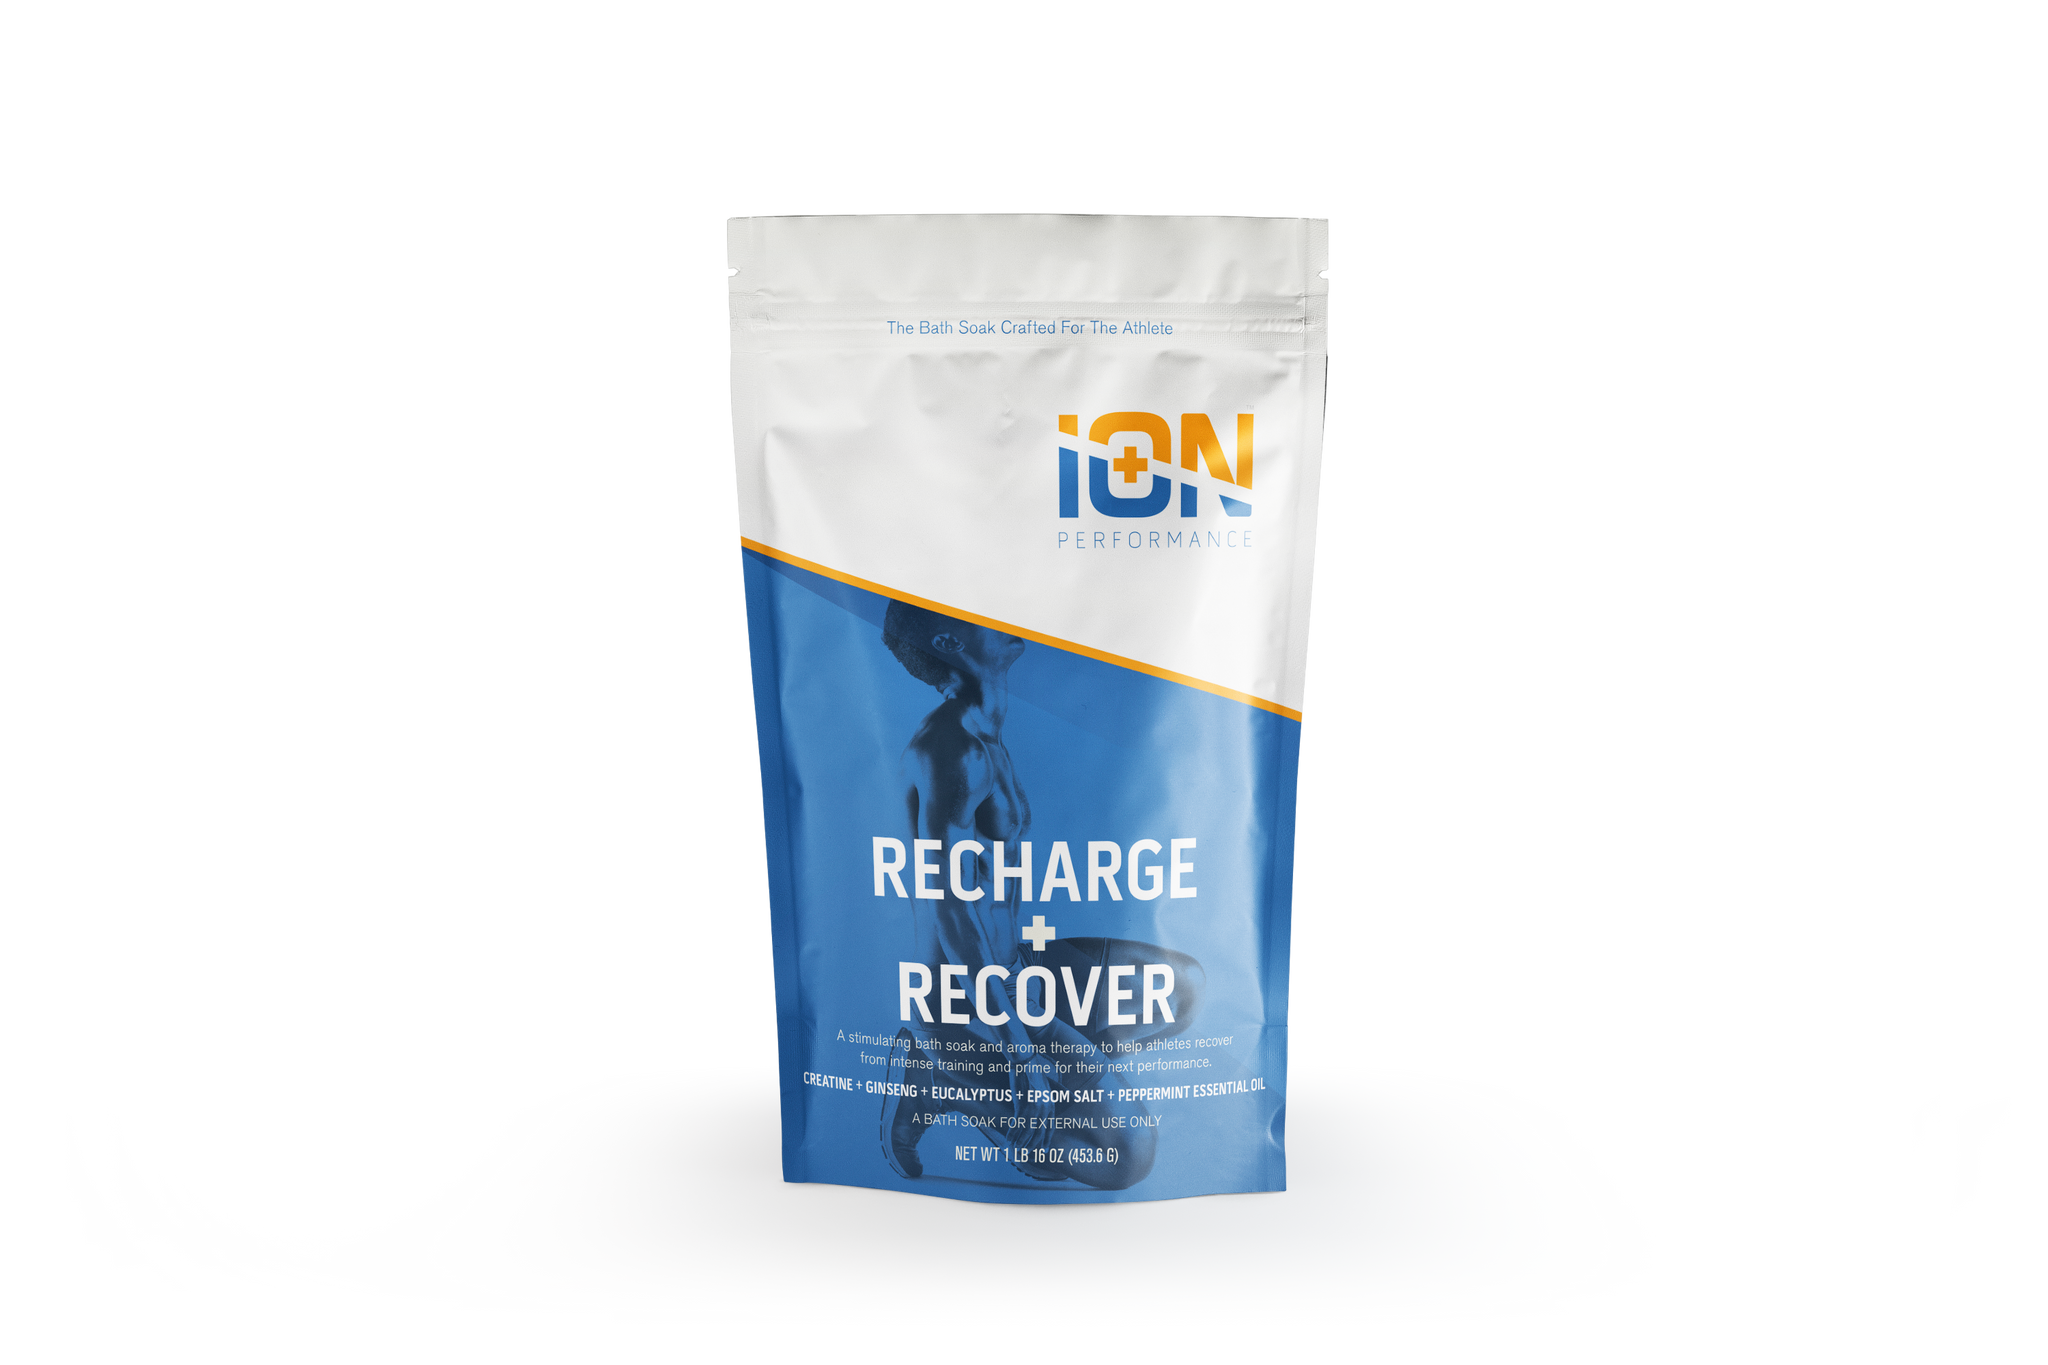 iON Performance Recharge + Recover